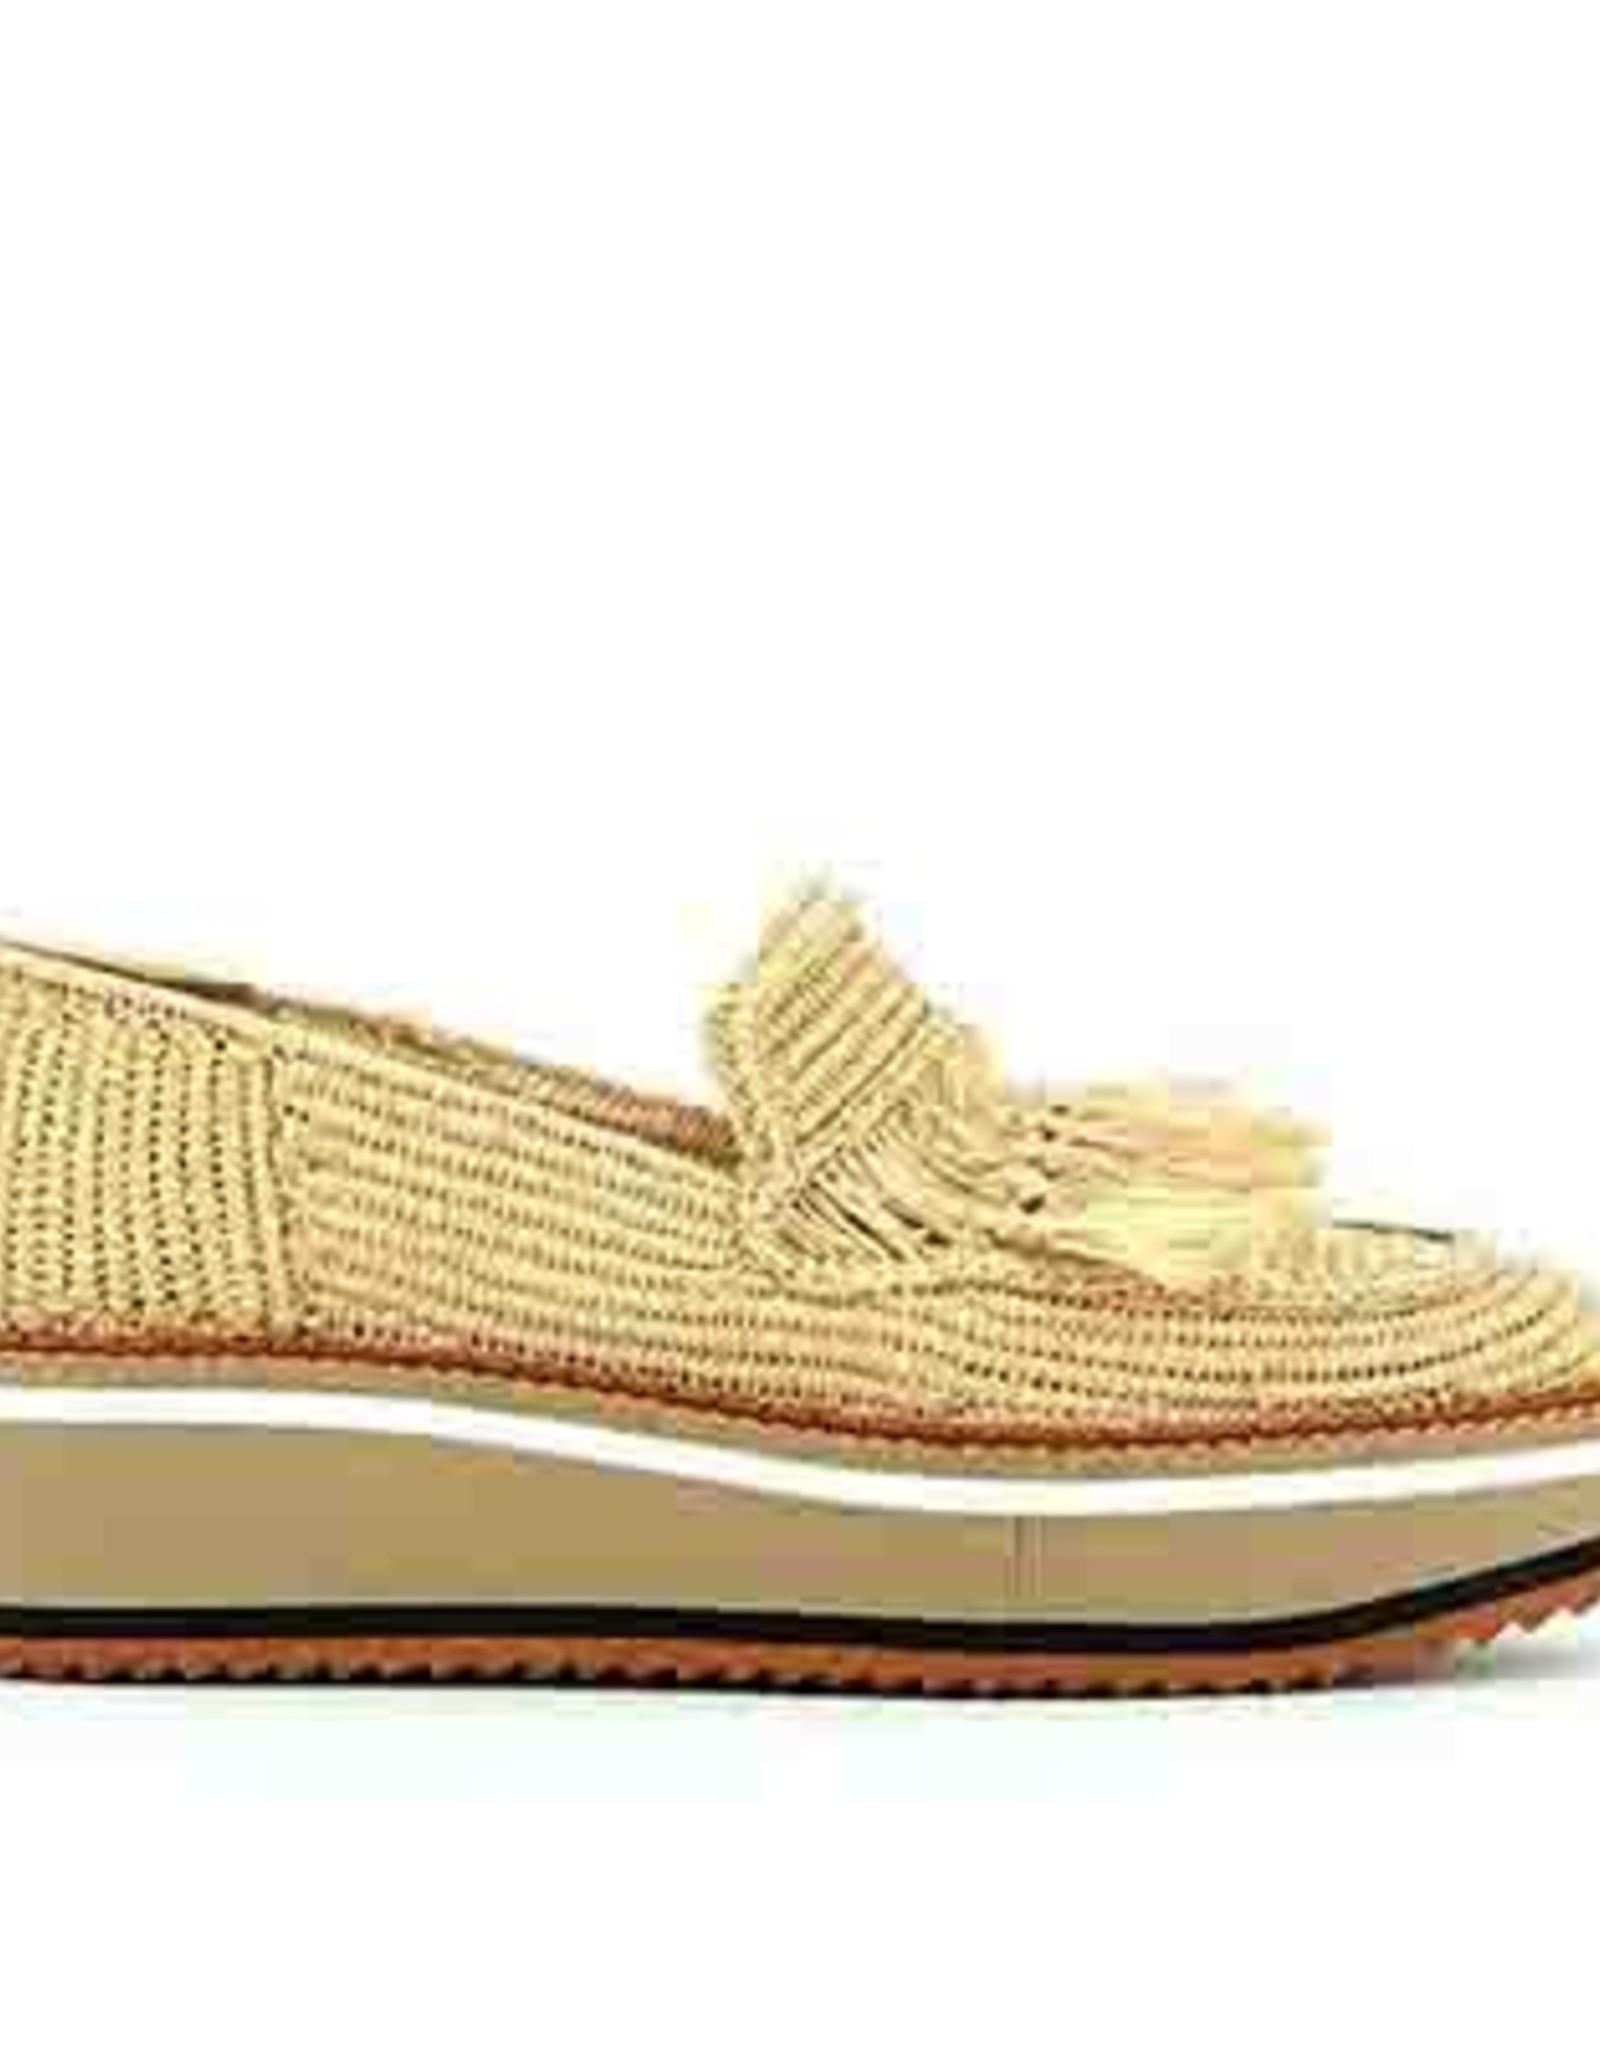 CLERGERIE - Bao Wedge Loafer